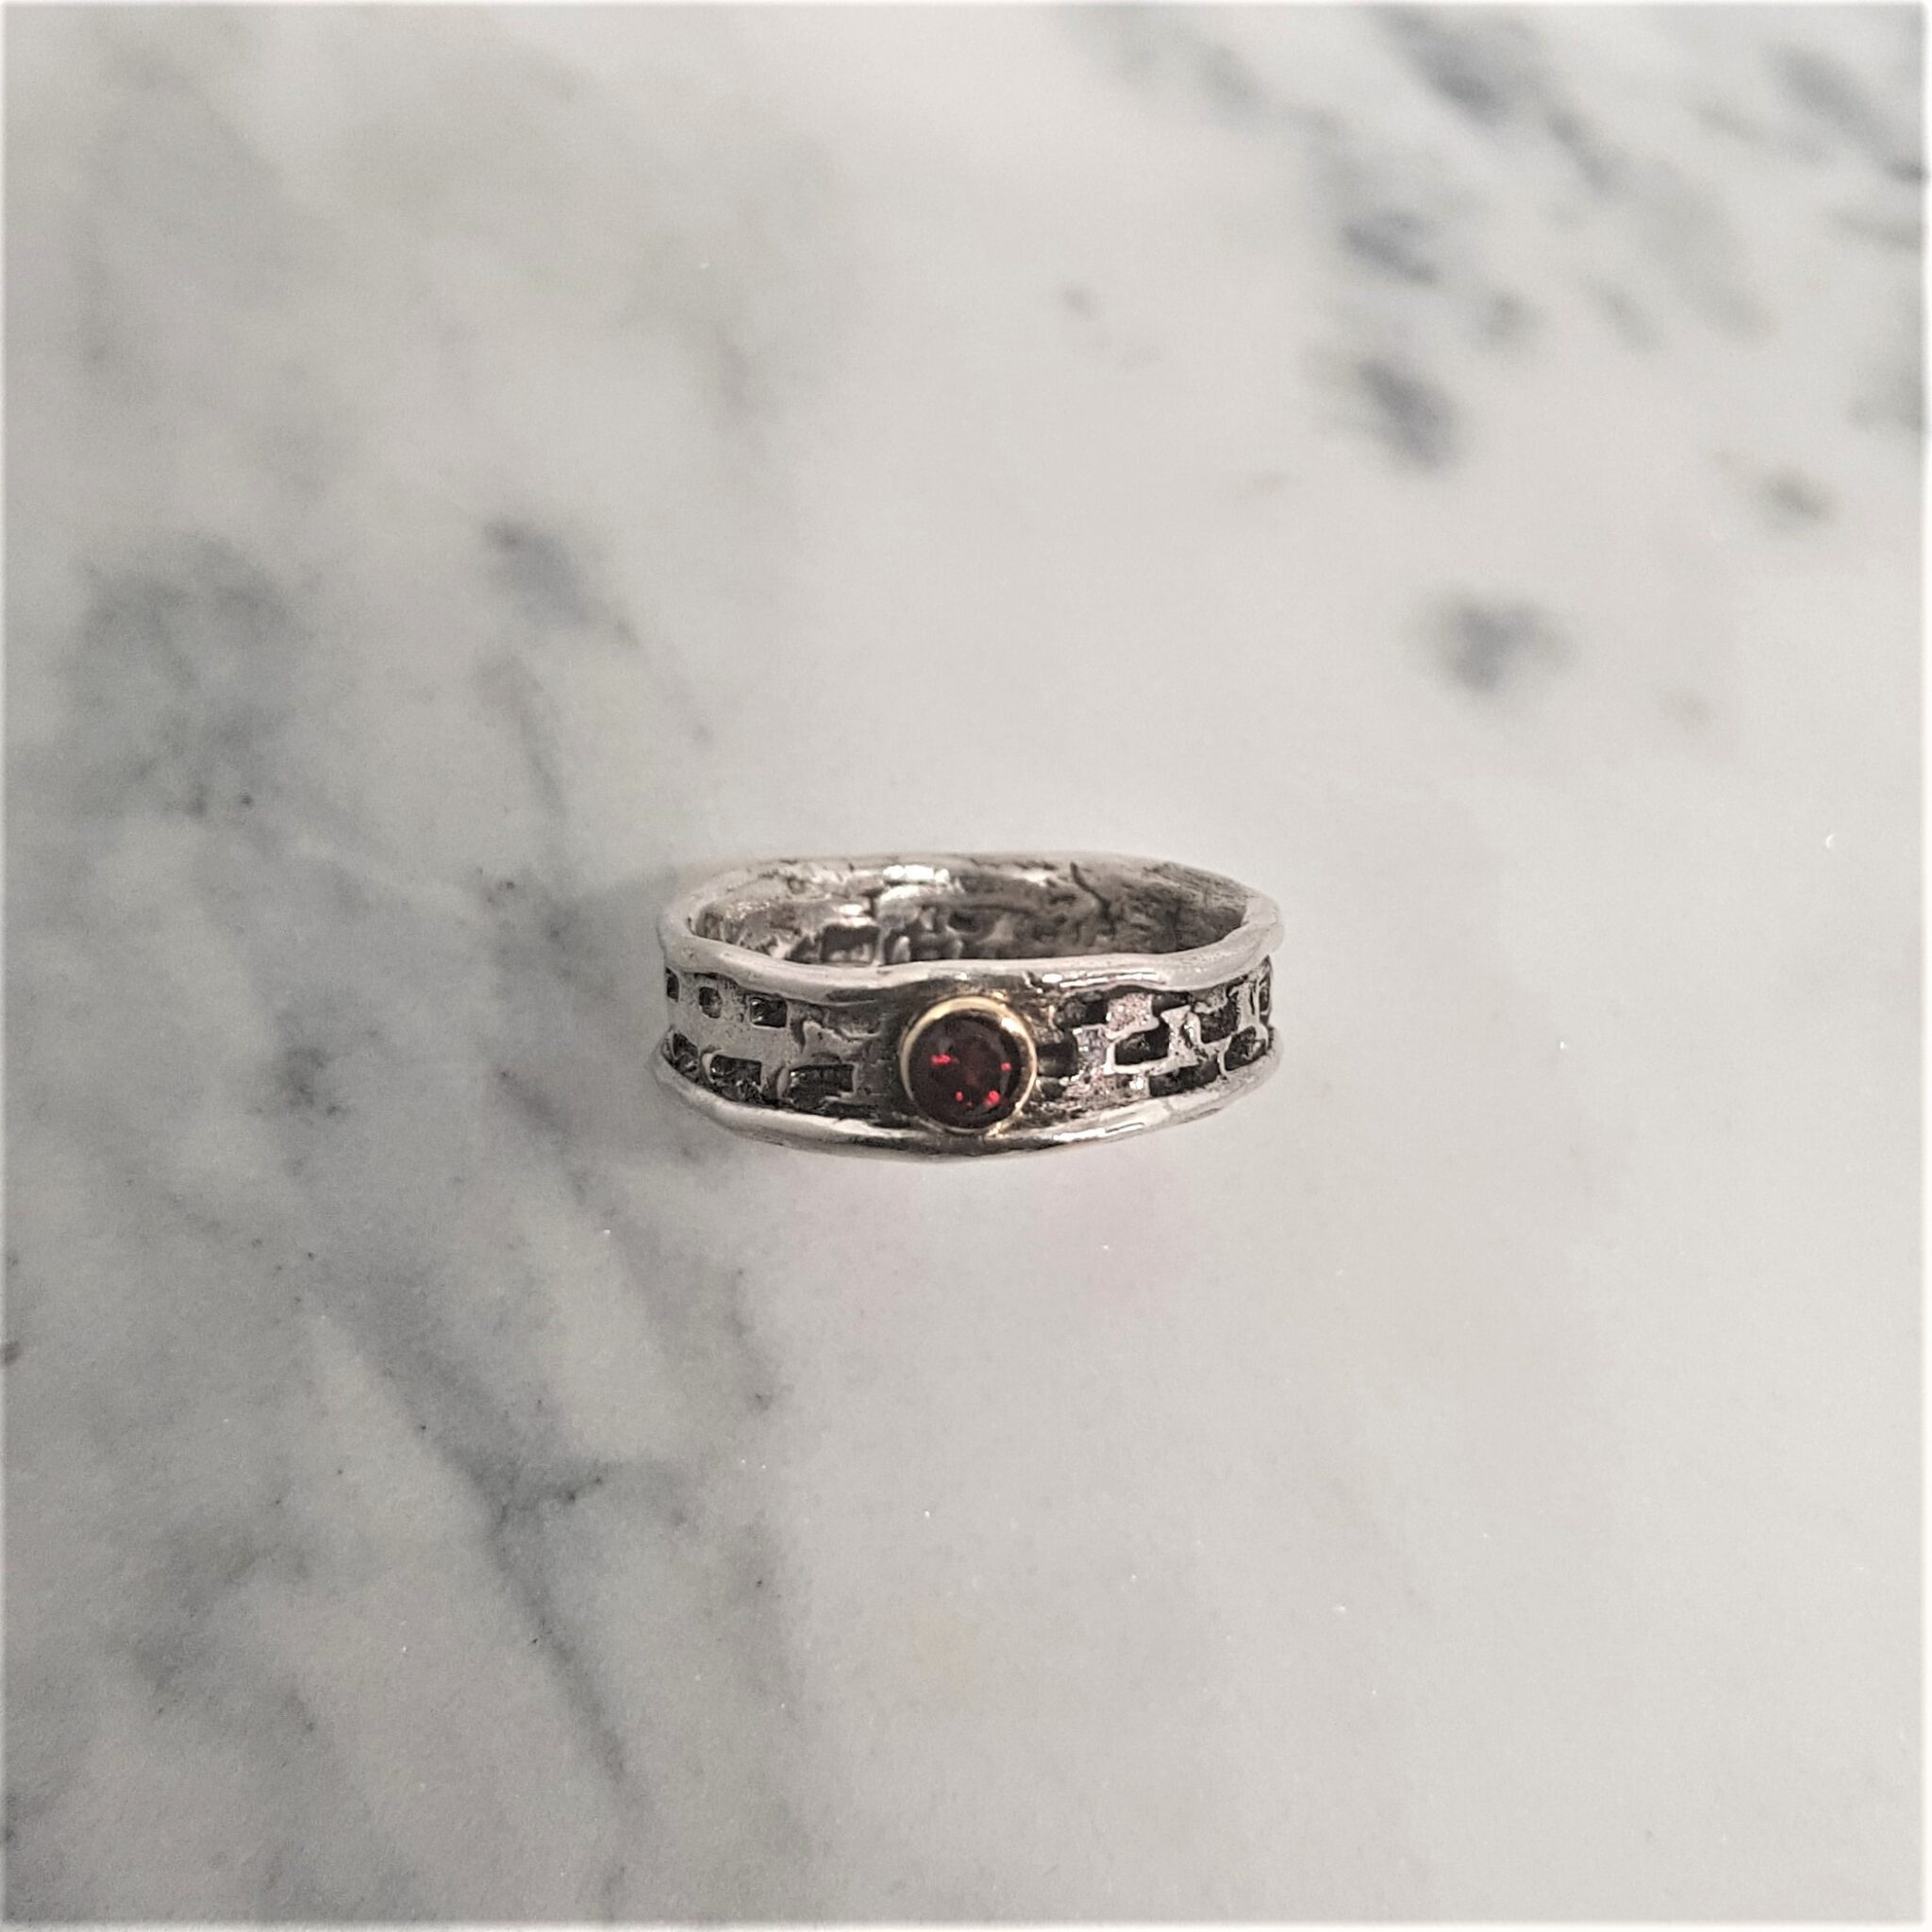 Textured Sterling Silver Ring With 3mm Pyrope Garnet Set In 9Ct Yellow Gold Rub Over Setting.Jewellery By Corinne Lomon